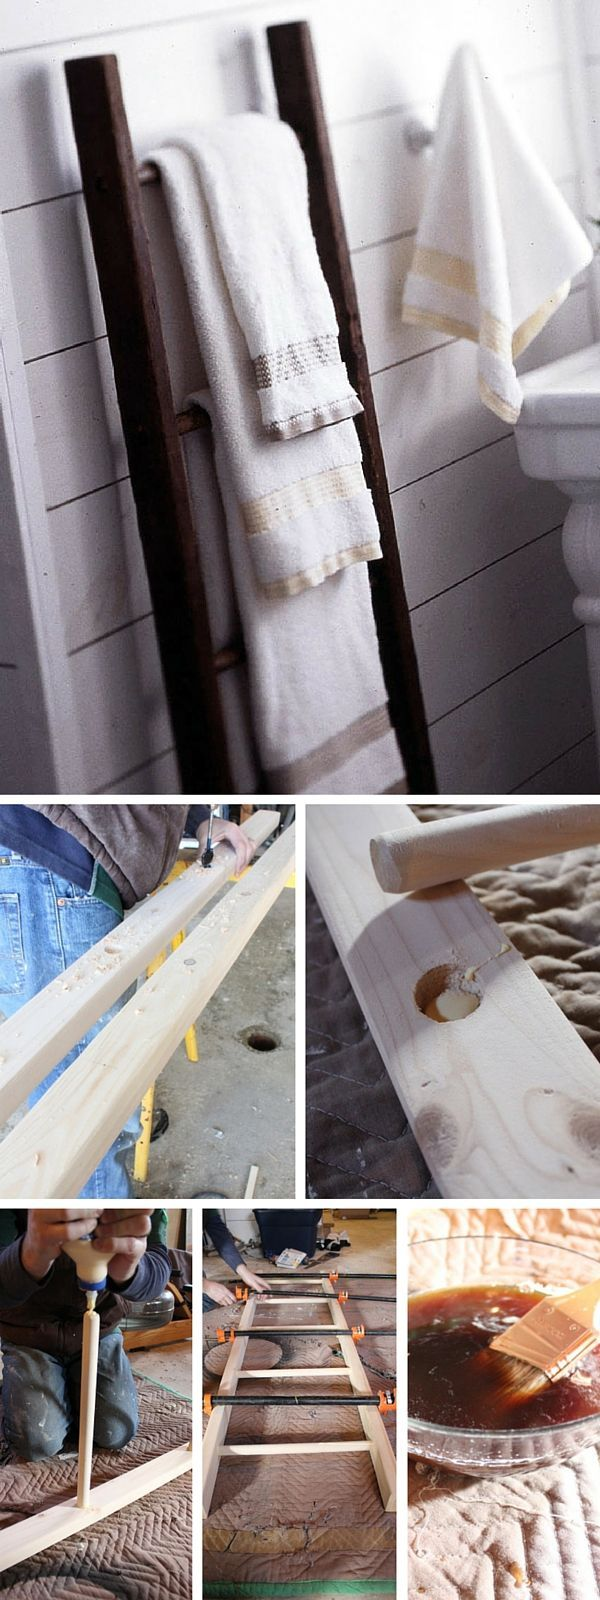 Check out the tutorial: #DIY Ladder Towel Rack #crafts #homedecor